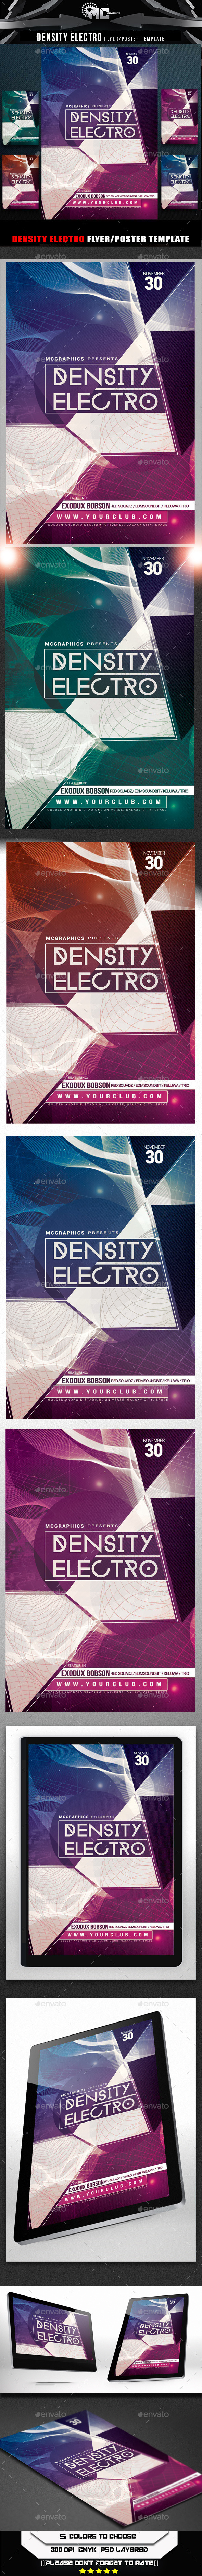 GraphicRiver Density Electro Flyer Template 8960014